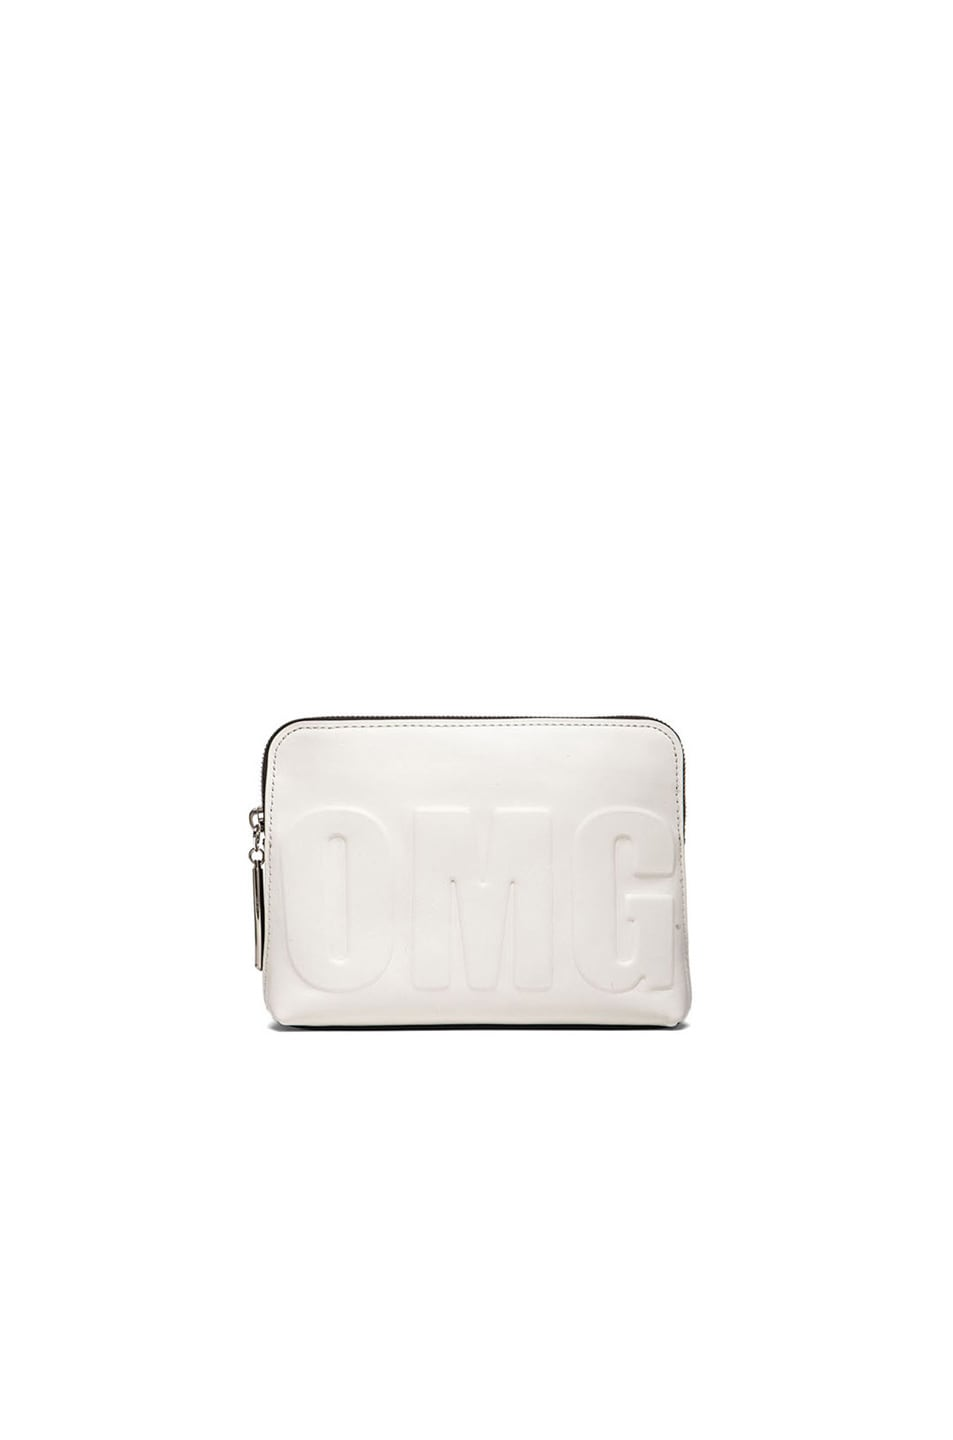 Image 1 of 3.1 phillip lim 'OMG' 31 Second Pouch in White & Black